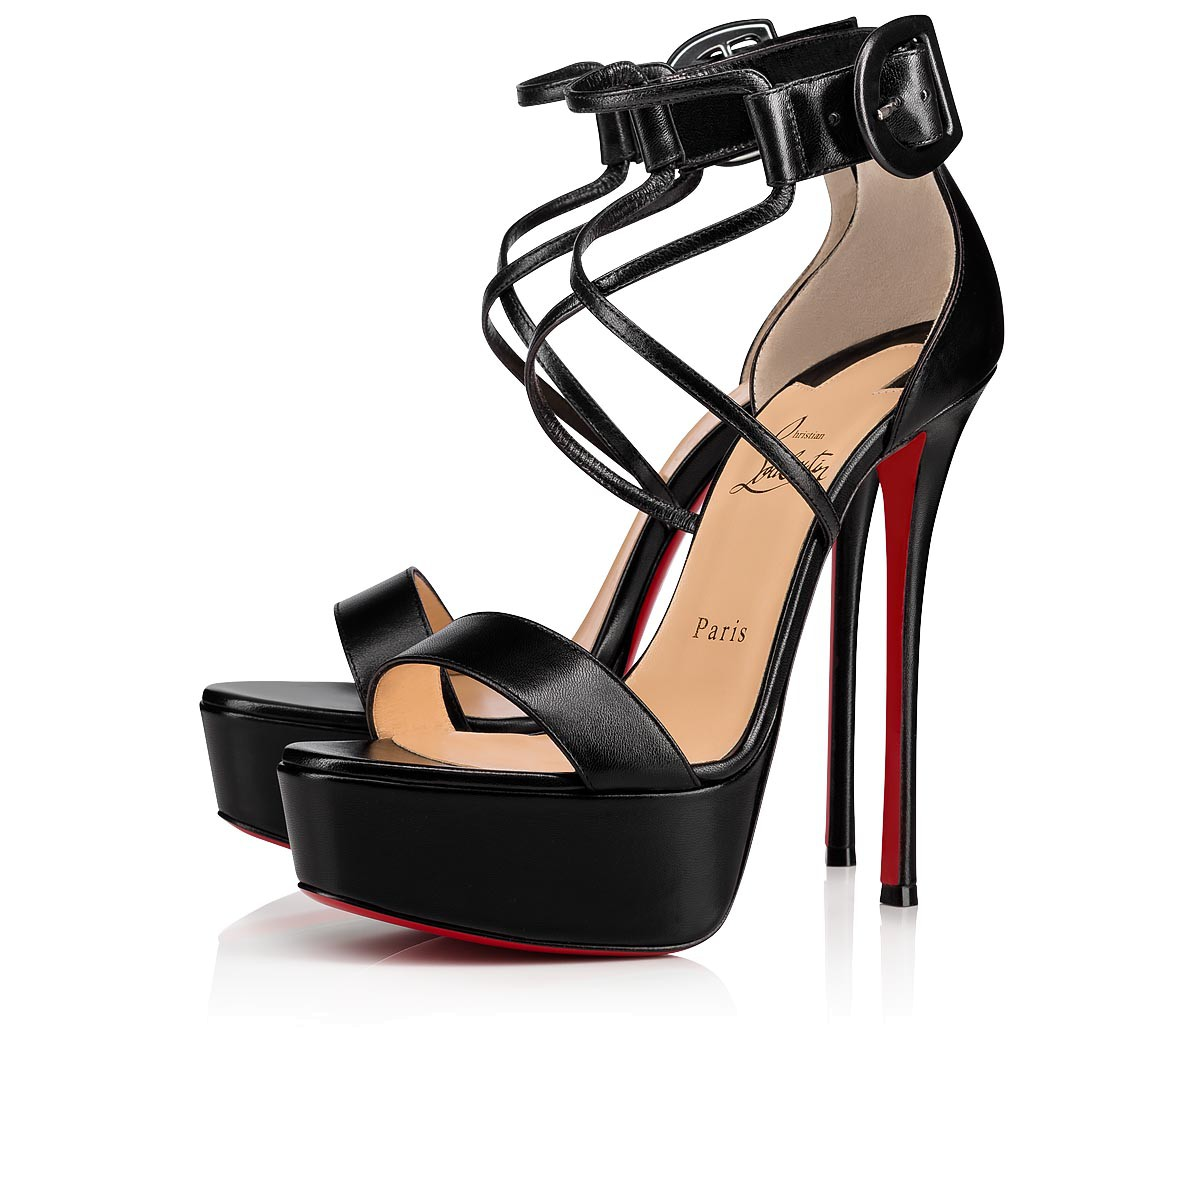 Shoes - Choca - Christian Louboutin